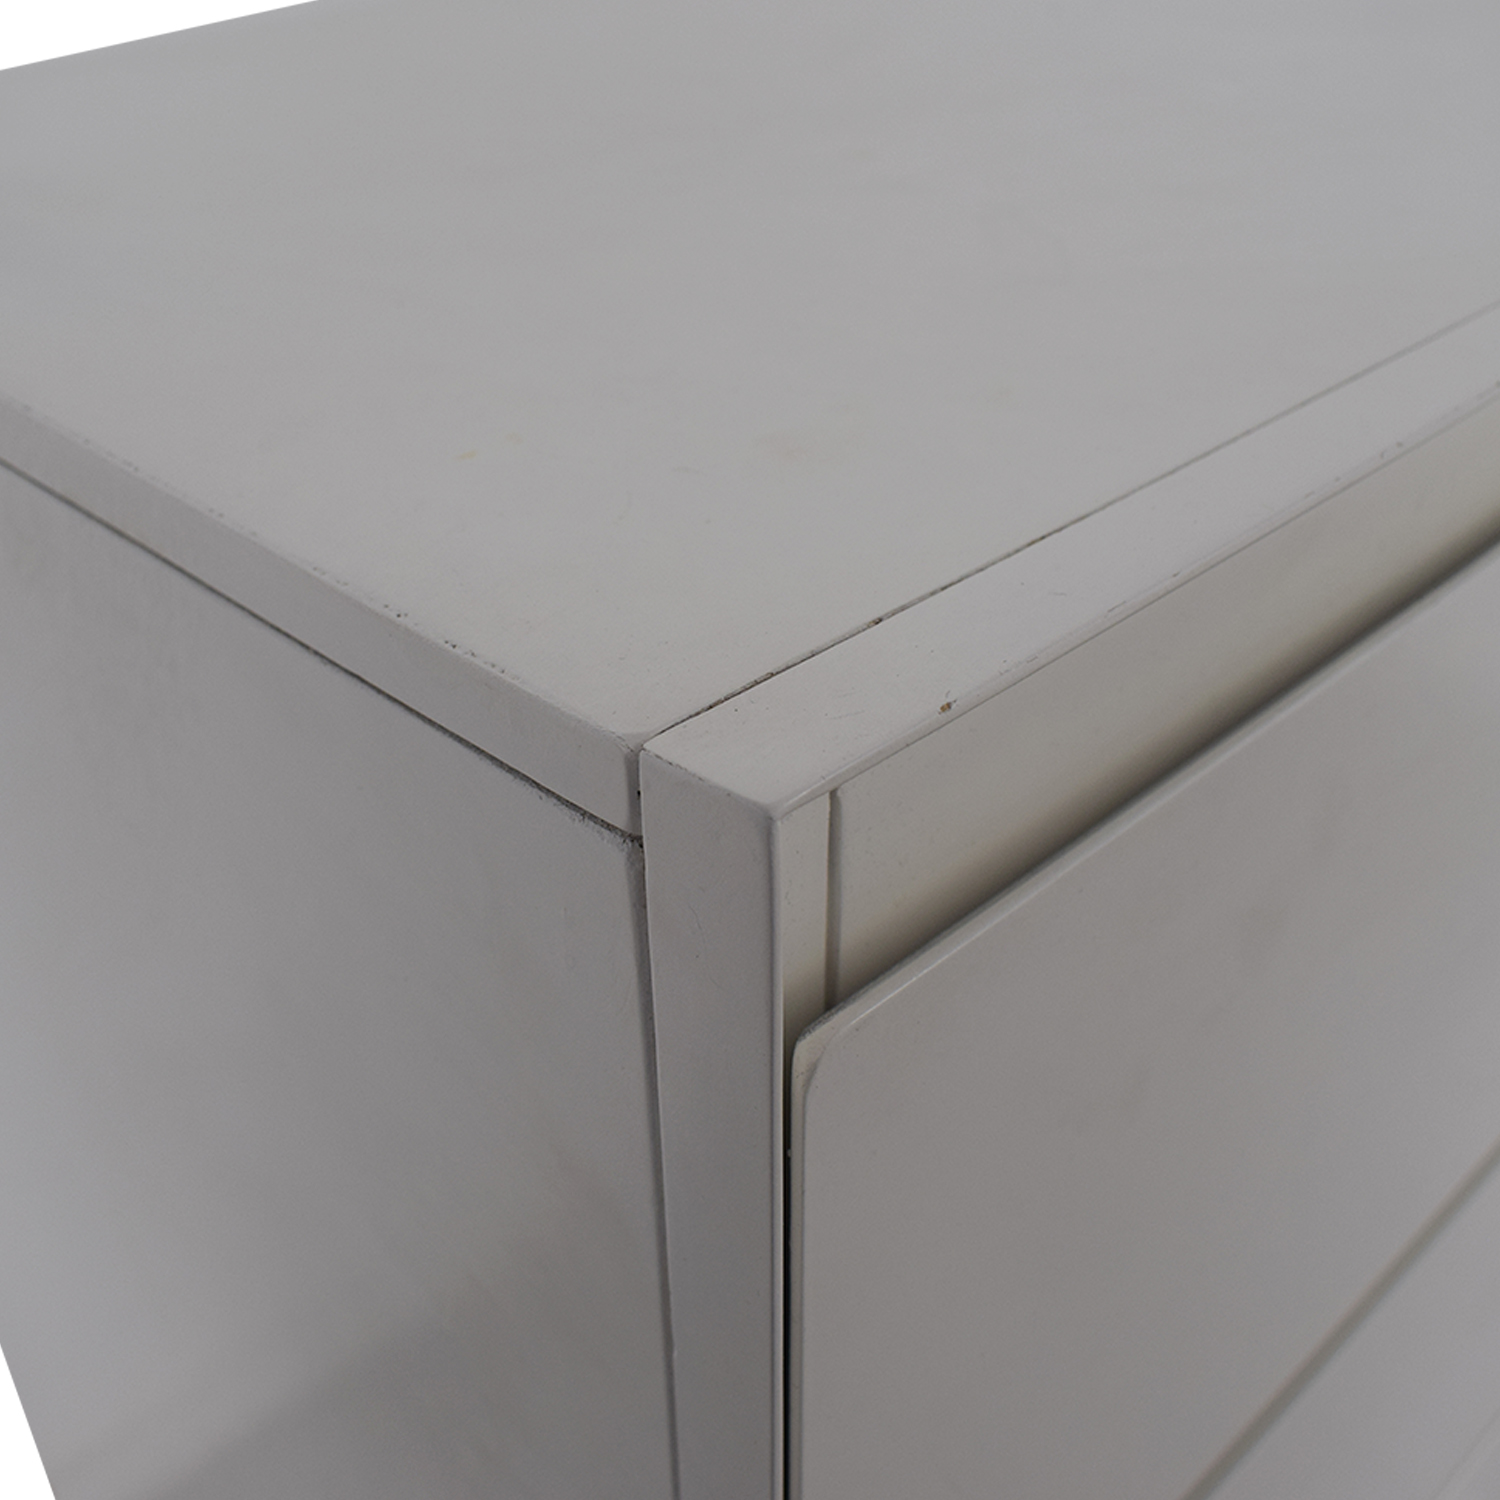 Furniture of America Furniture of America Leeroy Chest of Drawers discount